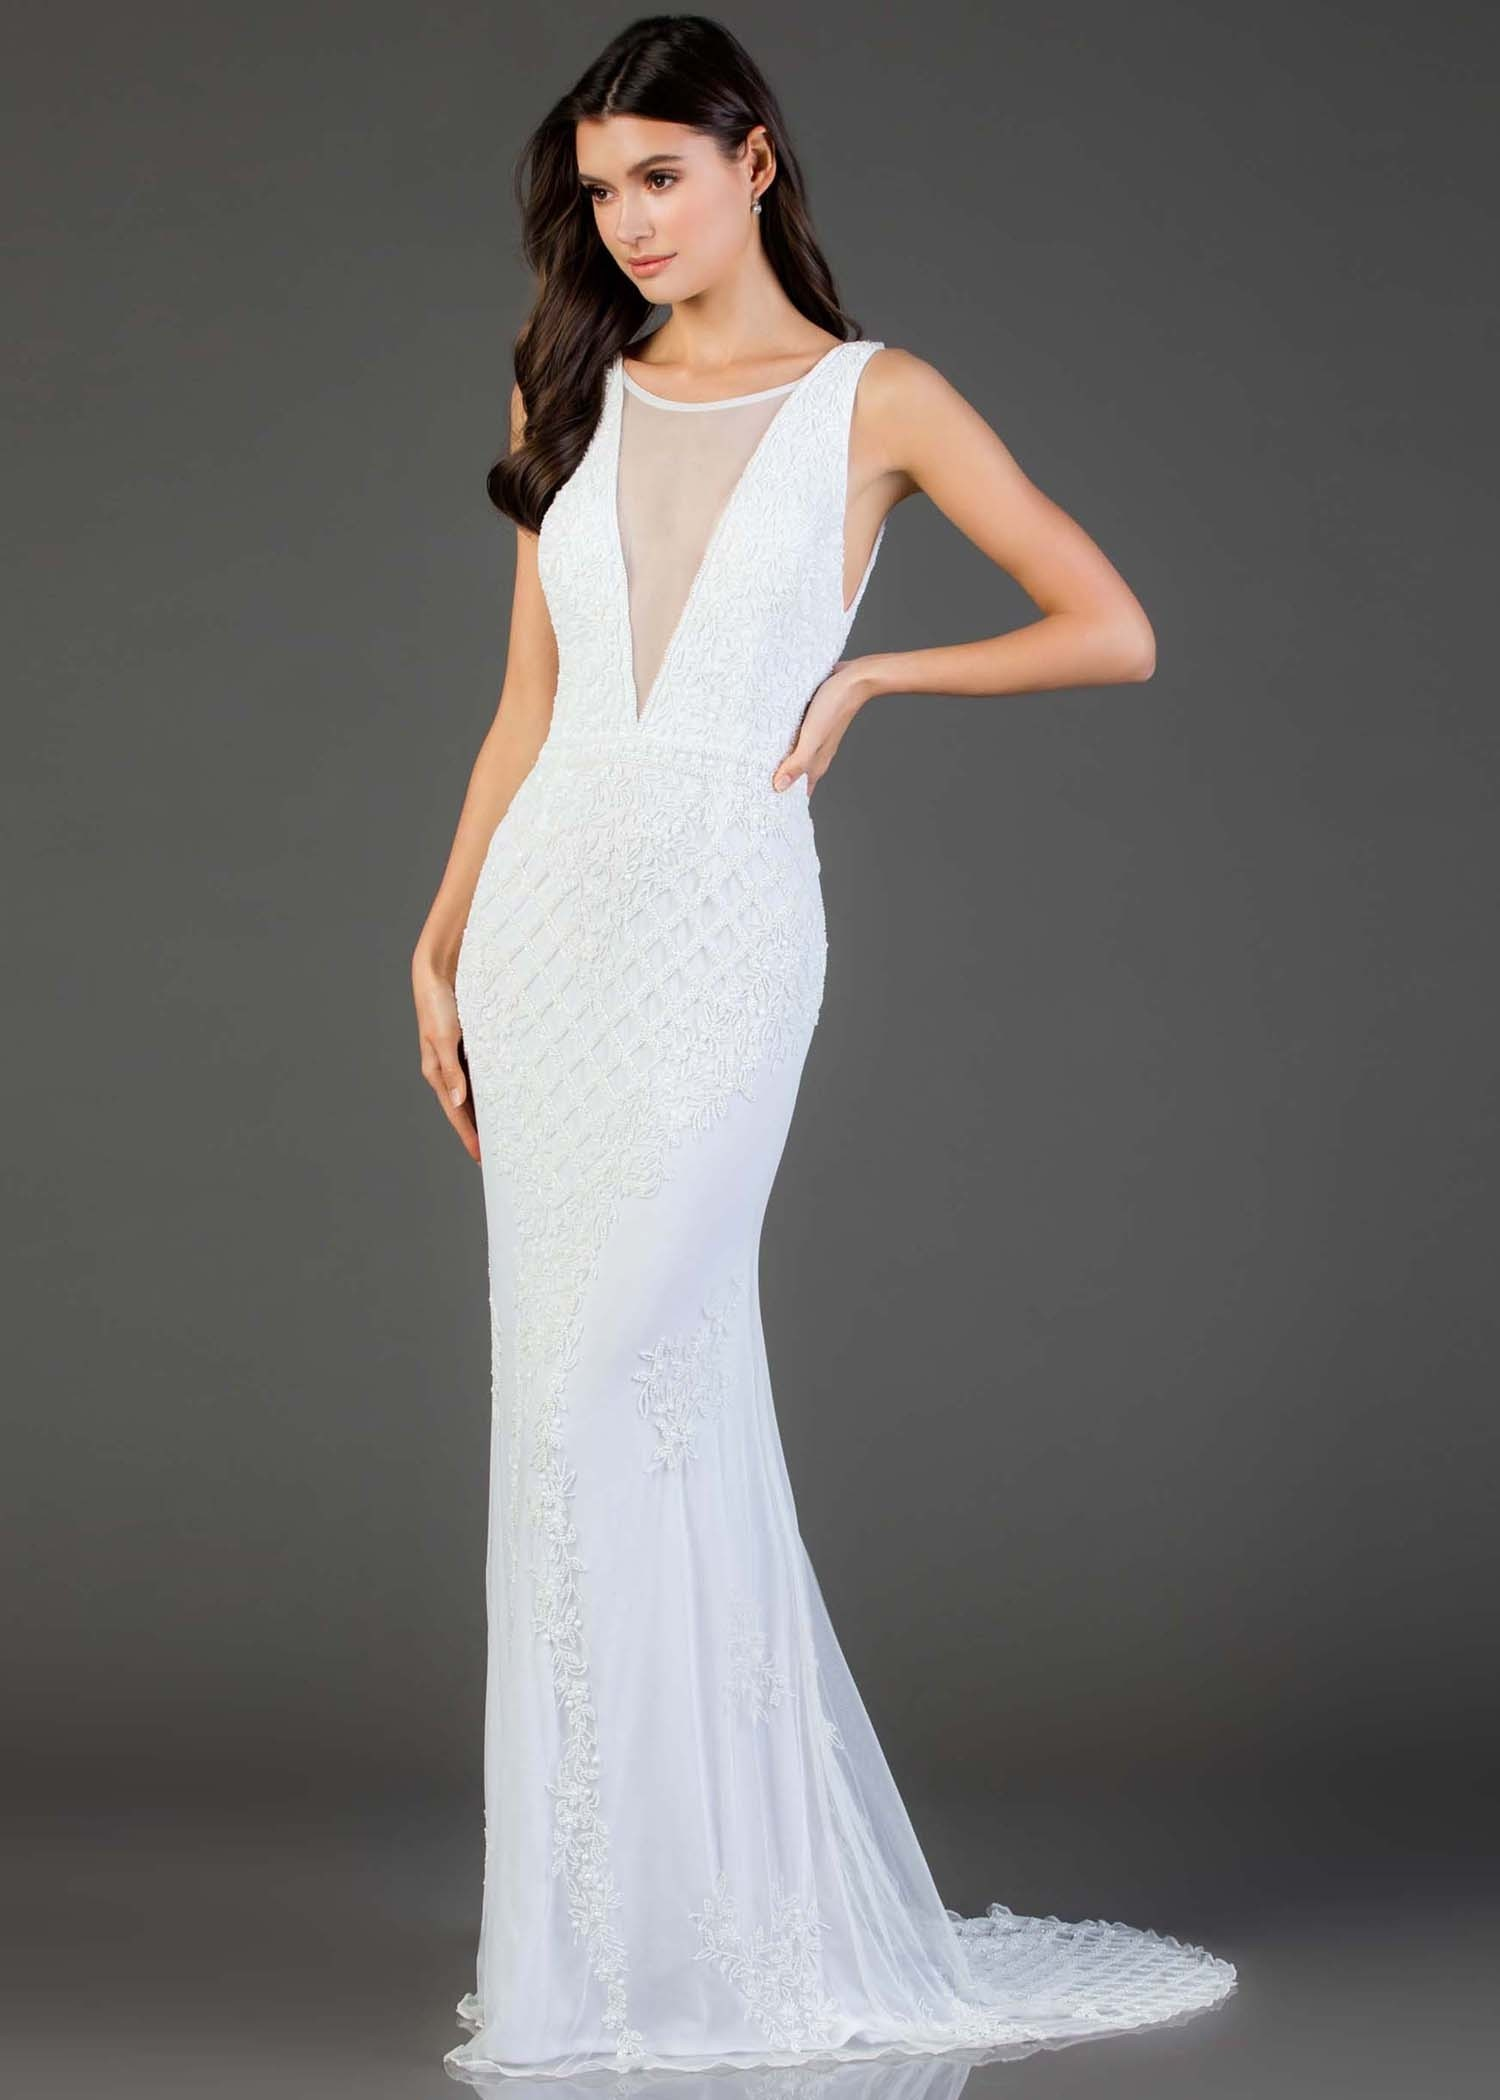 Scala 48787 Beaded Gown with Illusion V-Neck